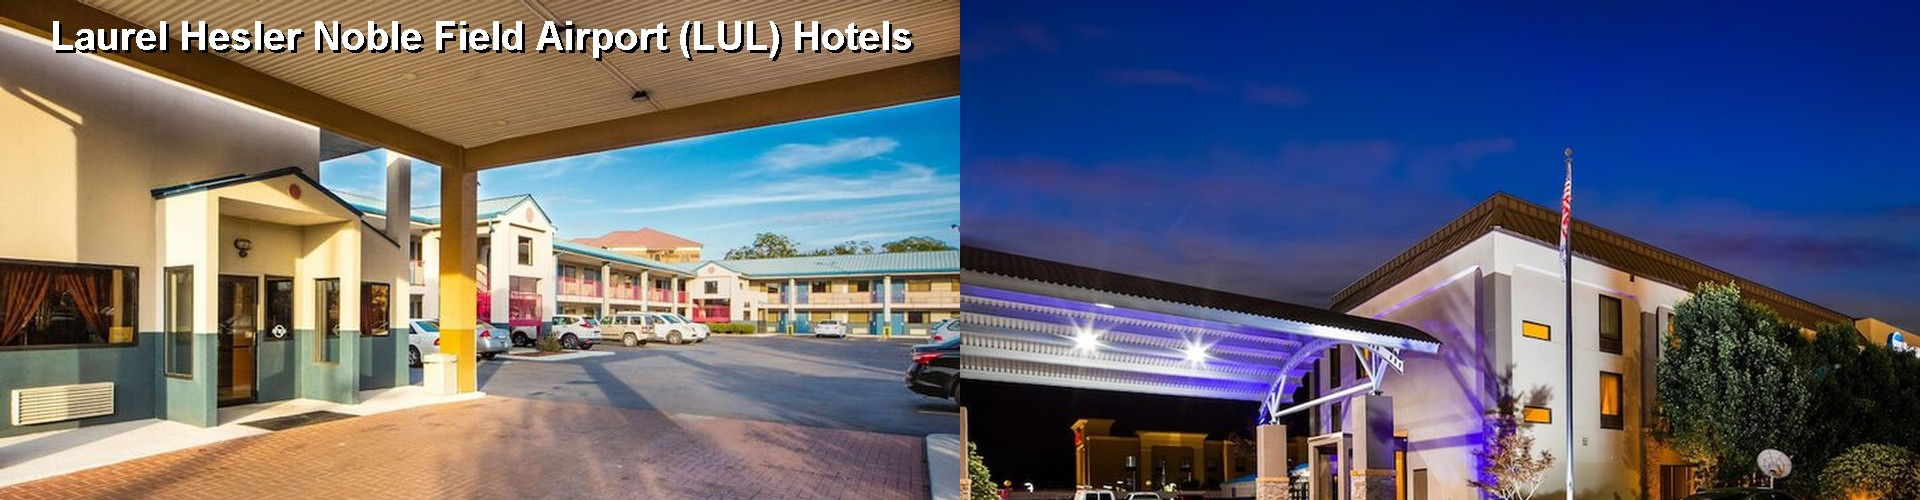 5 Best Hotels near Laurel Hesler Noble Field Airport (LUL)